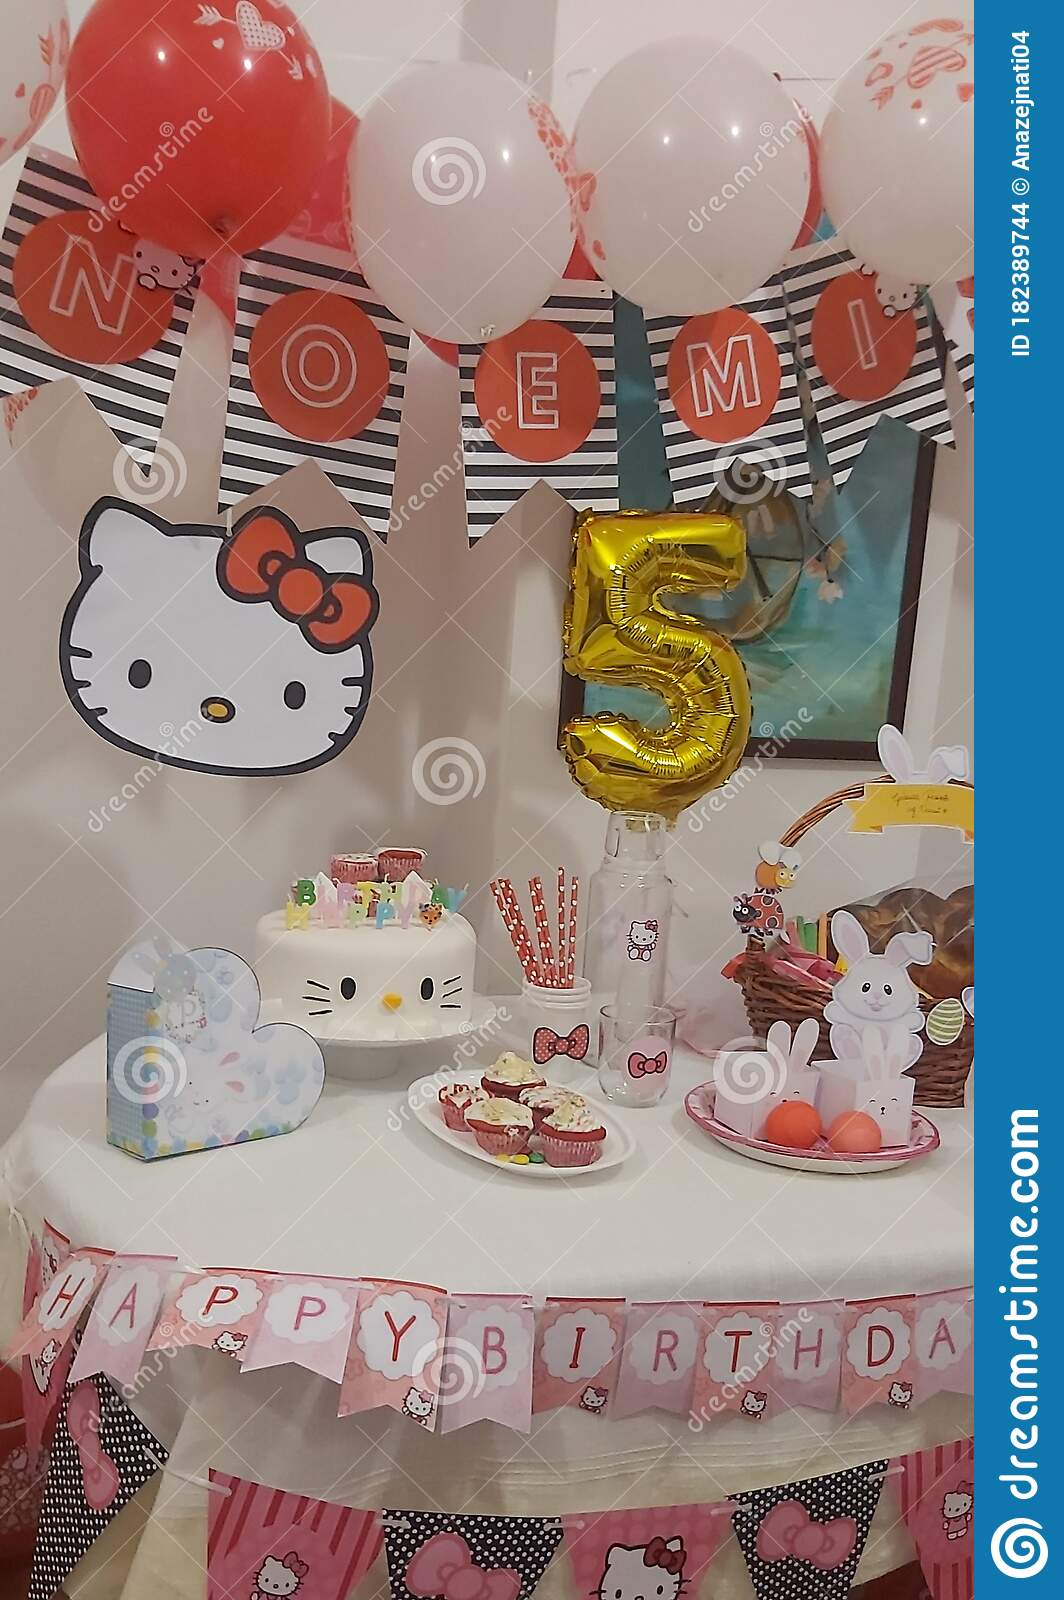 Hello Kitty Birthday Cake Editorial Stock Image Image Of Home 182389744